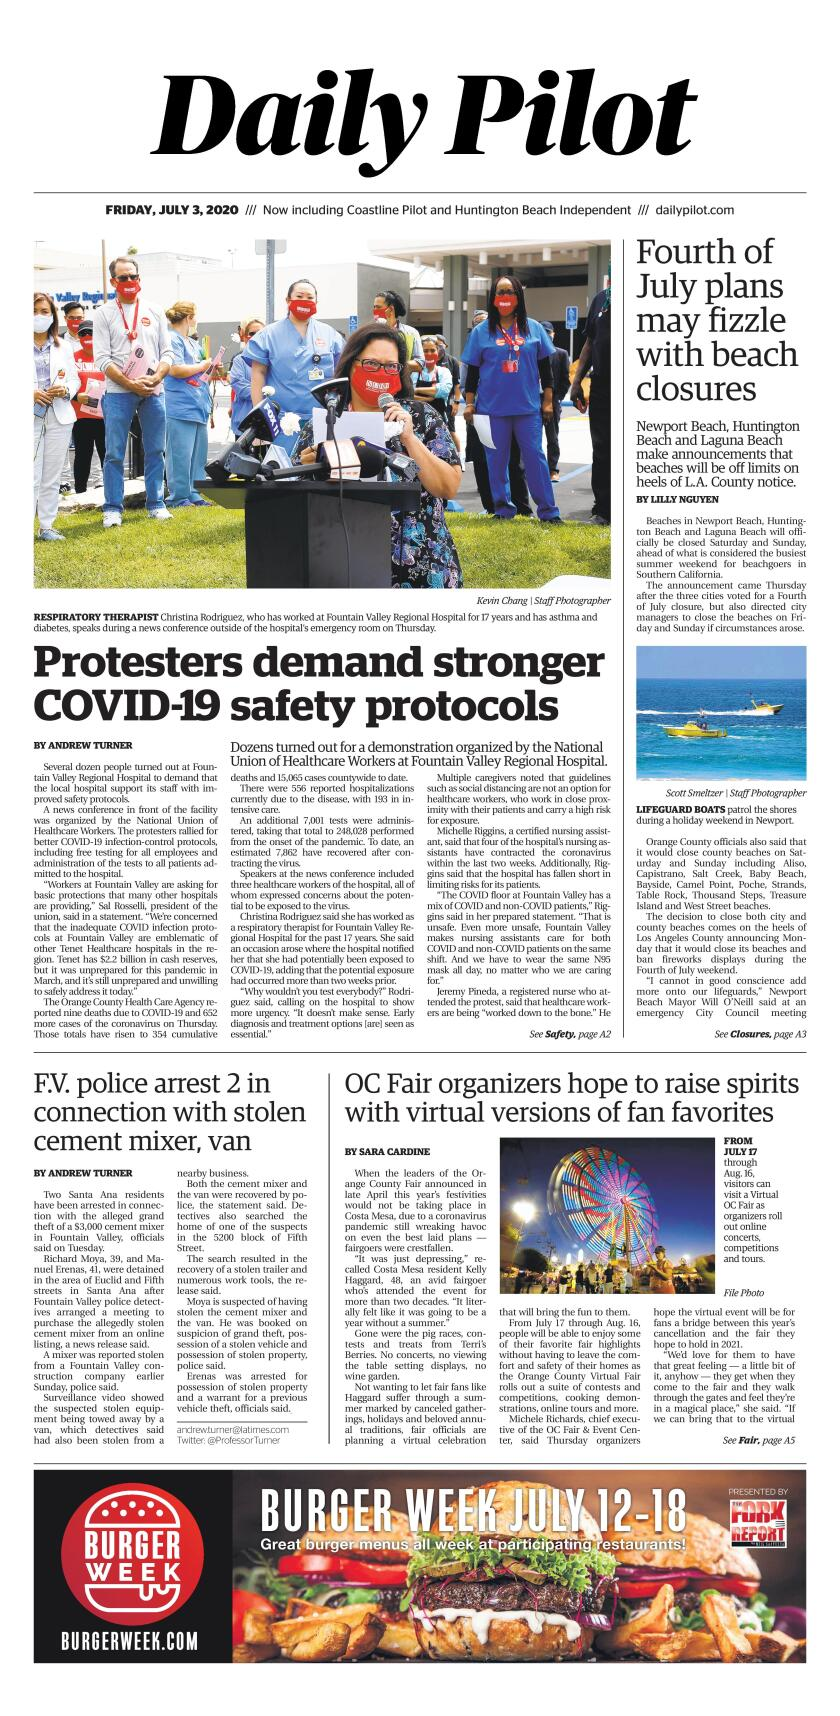 Daily Pilot e-Newspaper: Friday, July 3, 2020 Cover